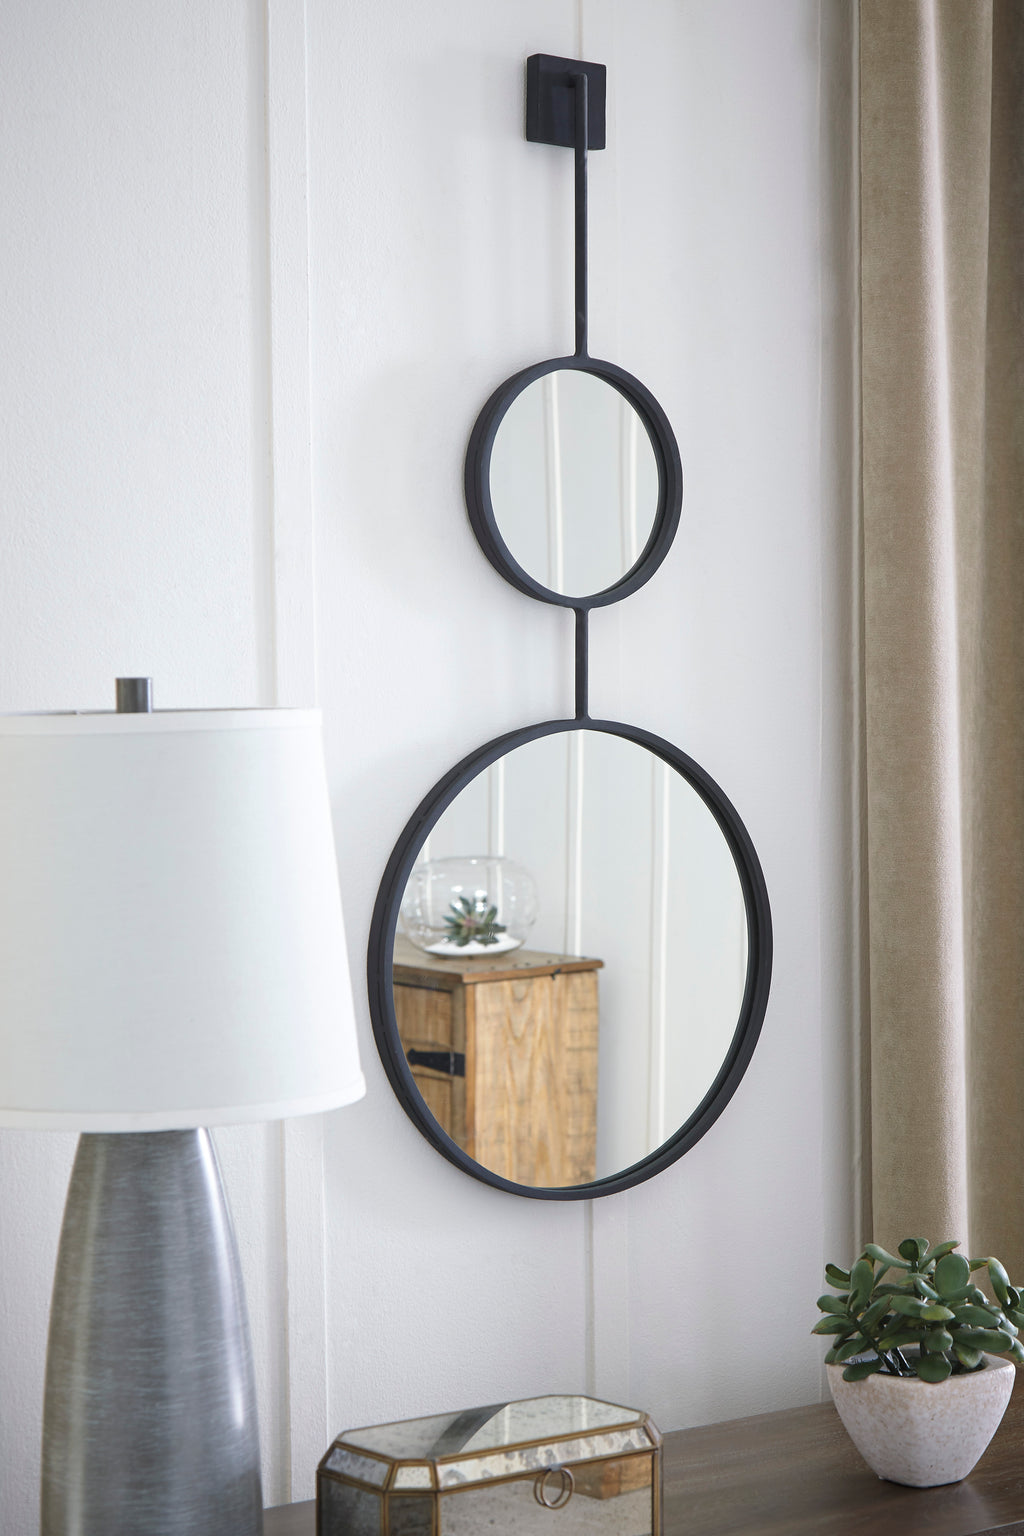 Textured Black Metal Accent Wall Mirror